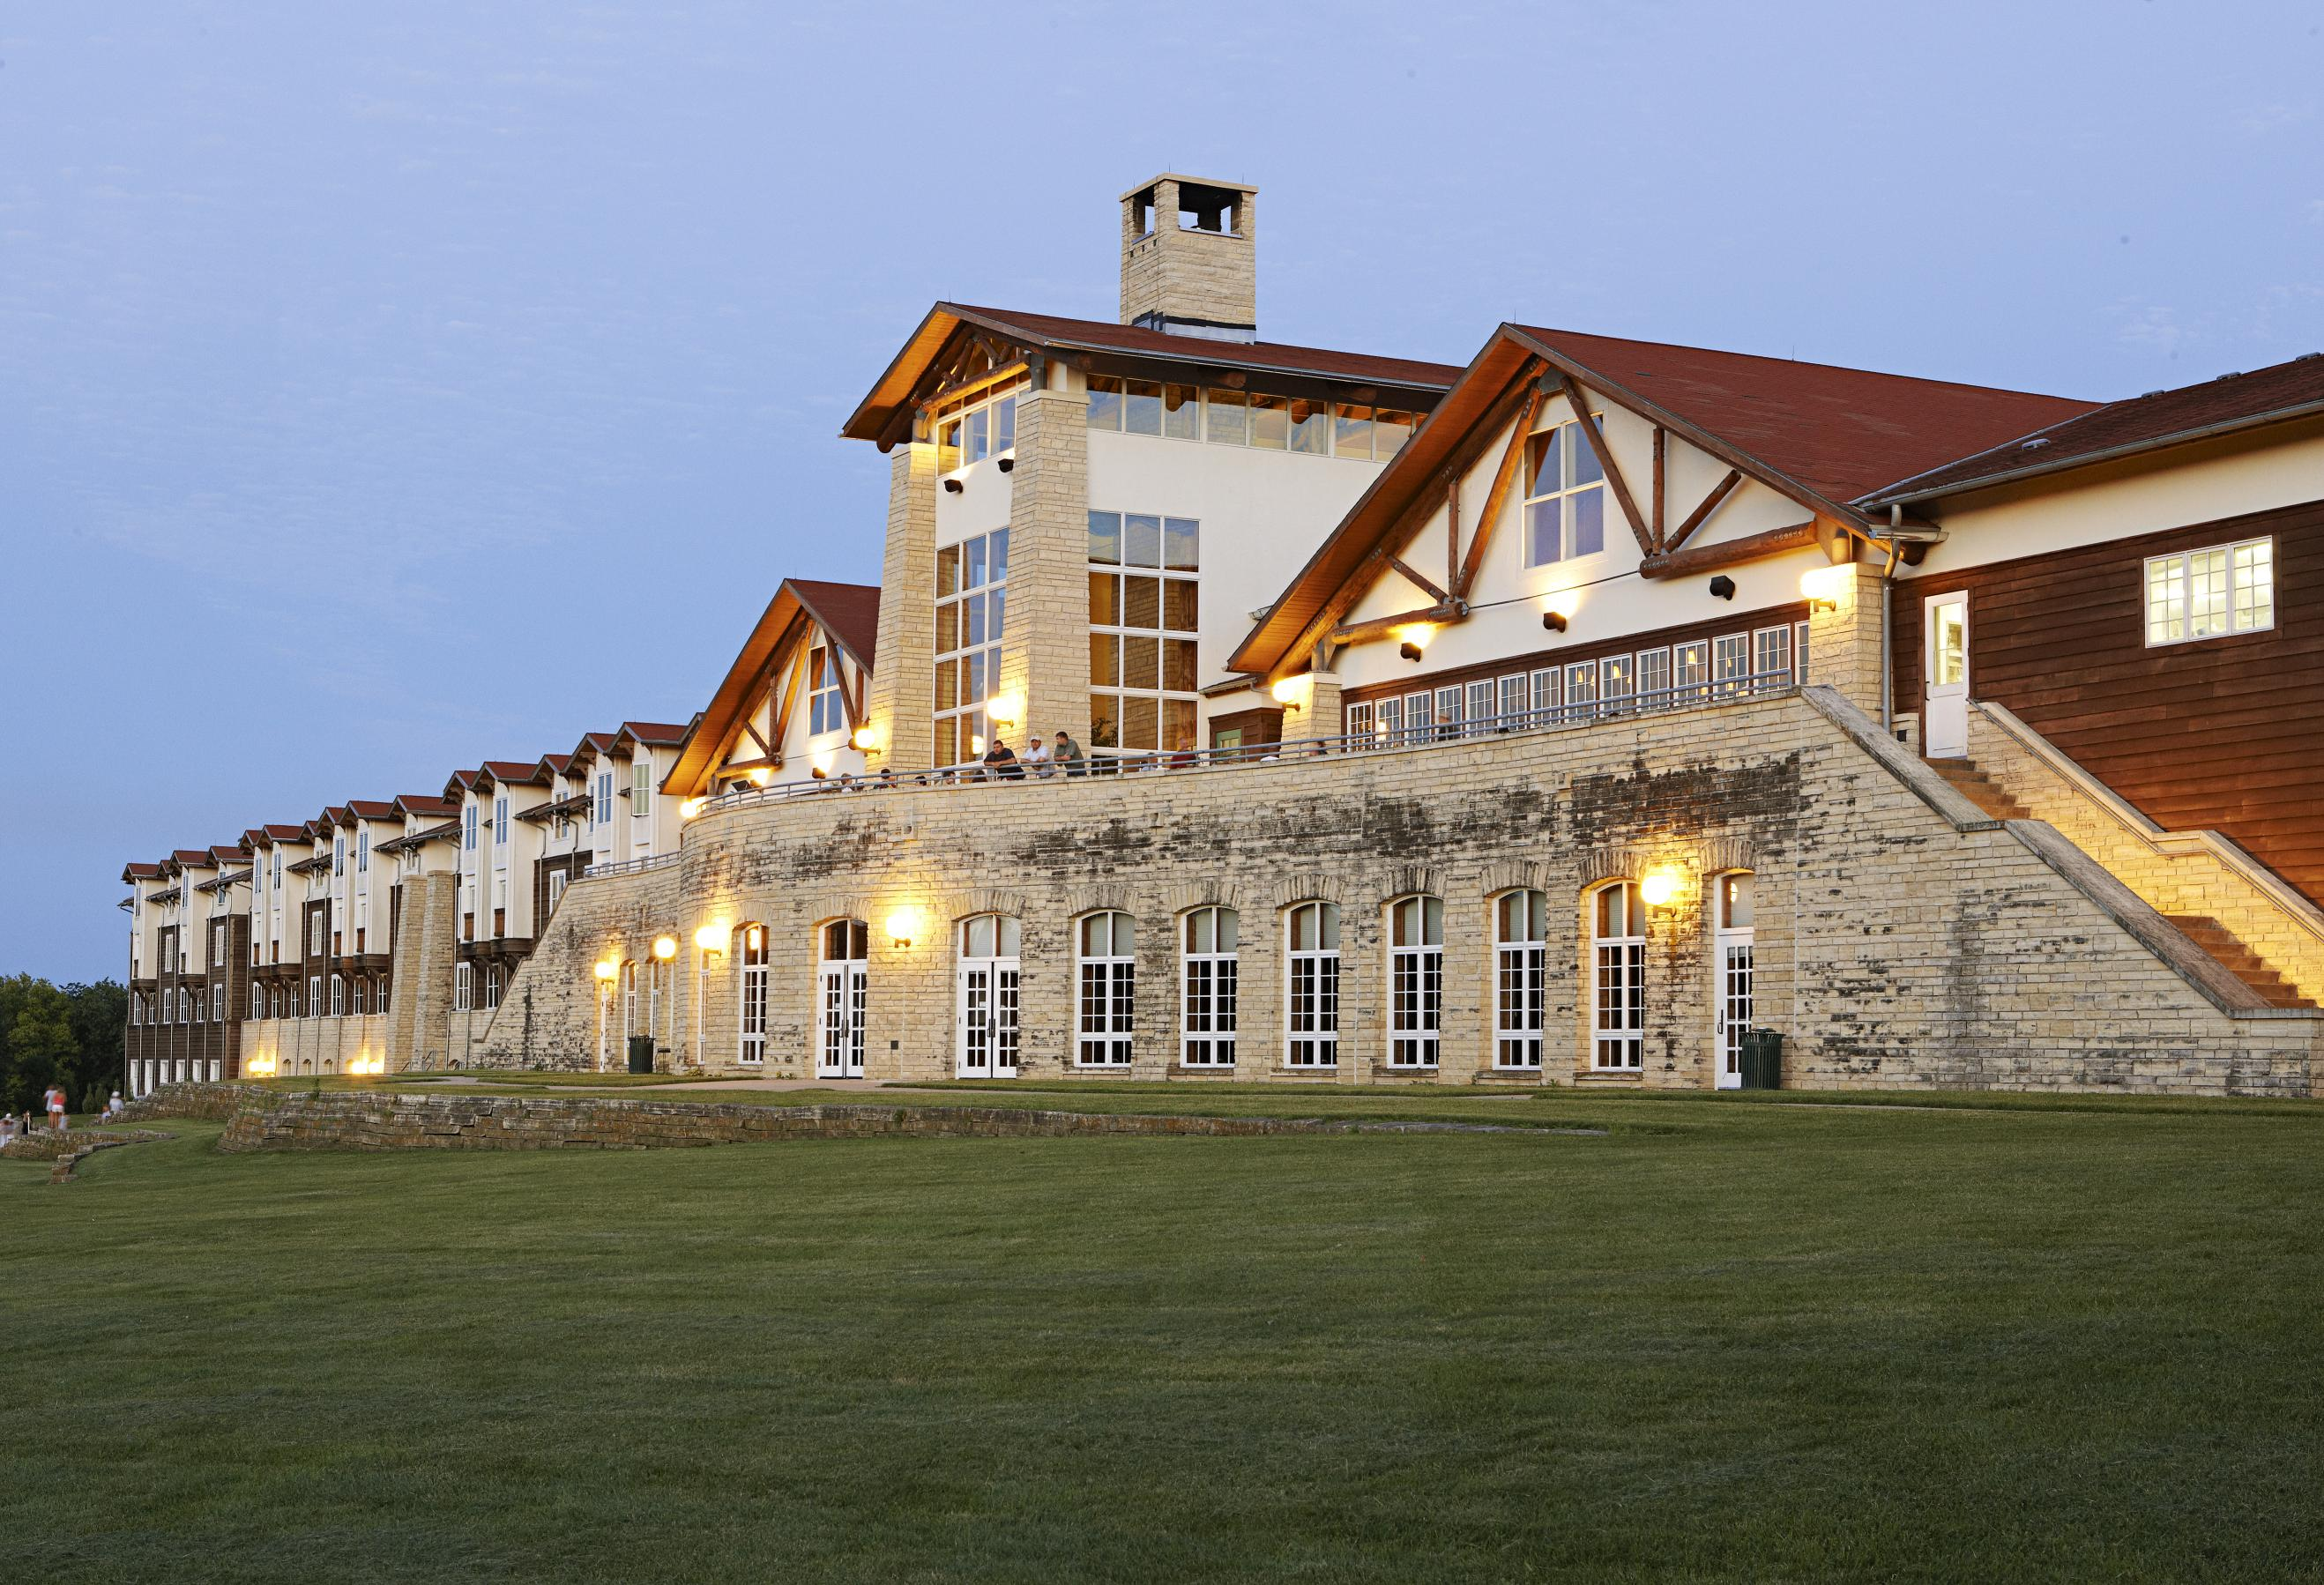 Lied Lodge and Conference Center. Photo by Jay Wilde.